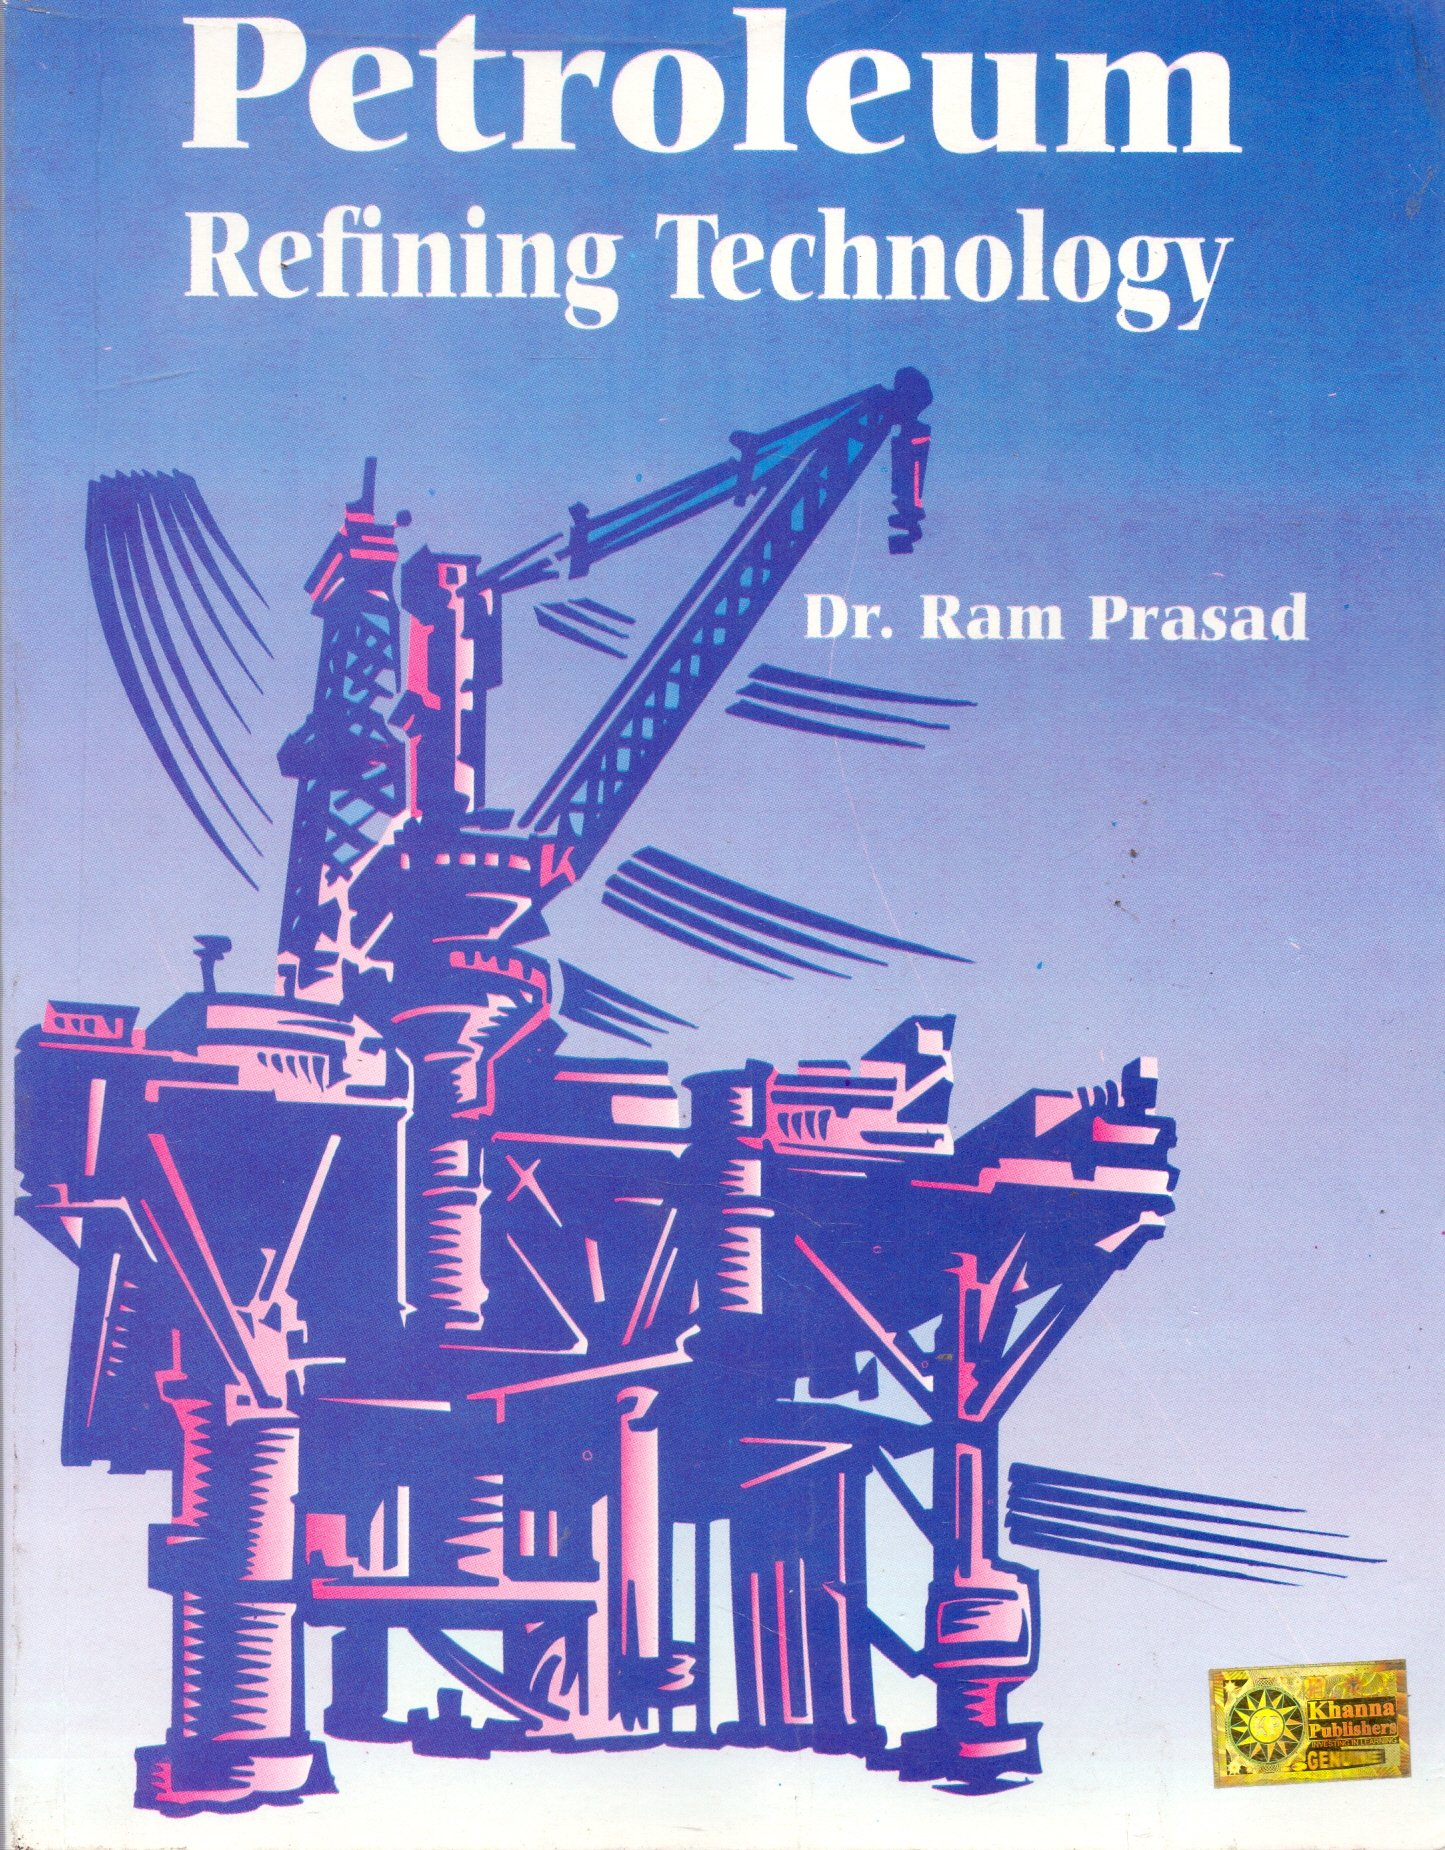 Petrochemical Books Pdf